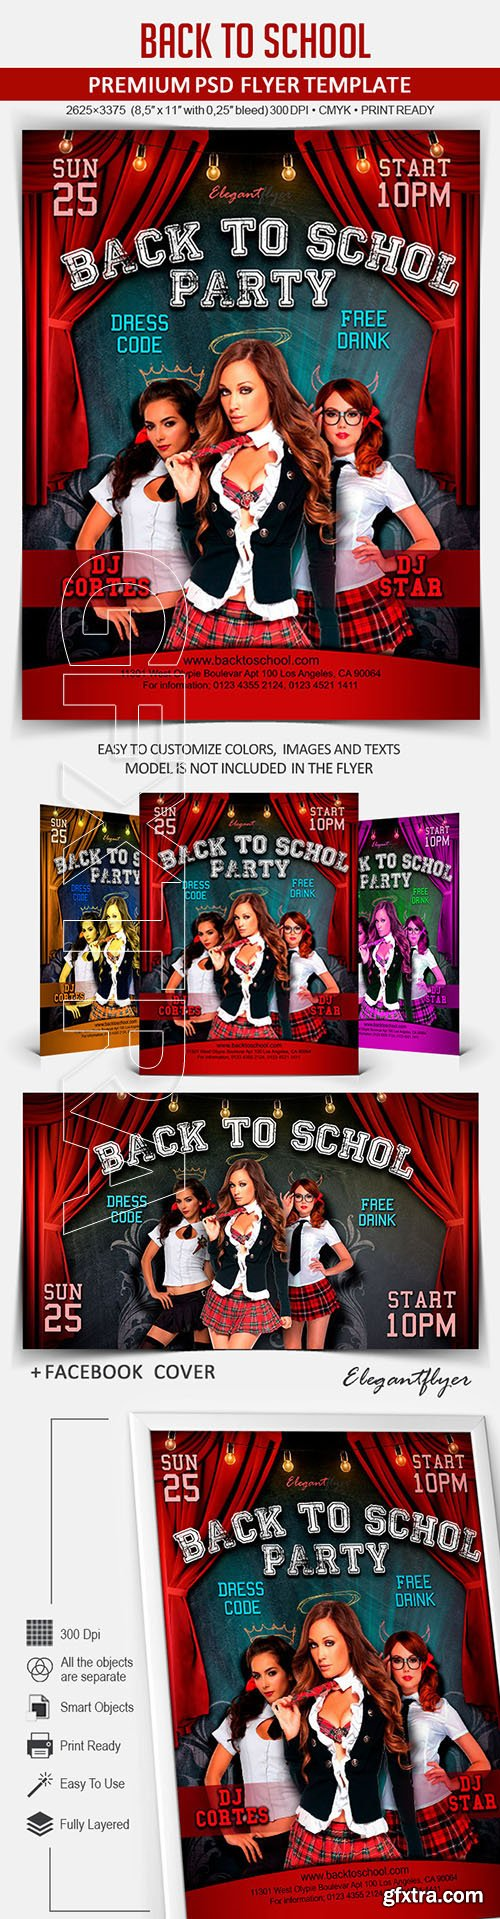 Back to school party – Flyer PSD Template